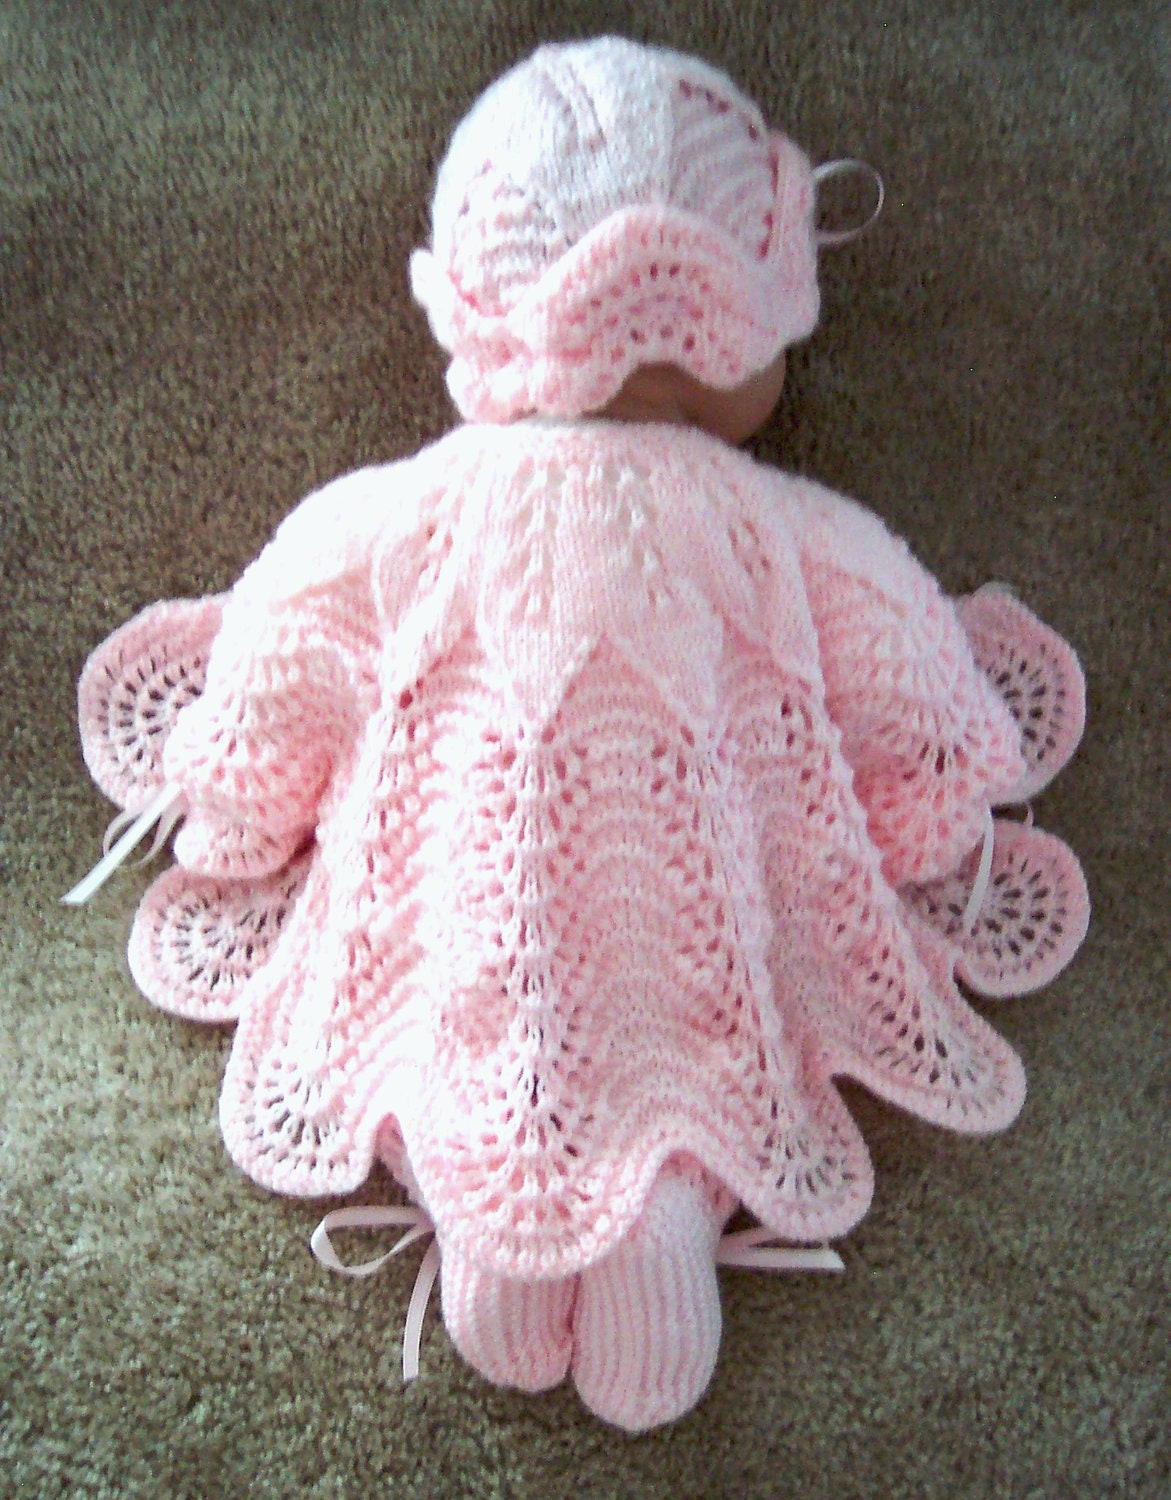 Handmade Knitting Patterns : Custom handmade knit baby girls or Reborn Dolls pink